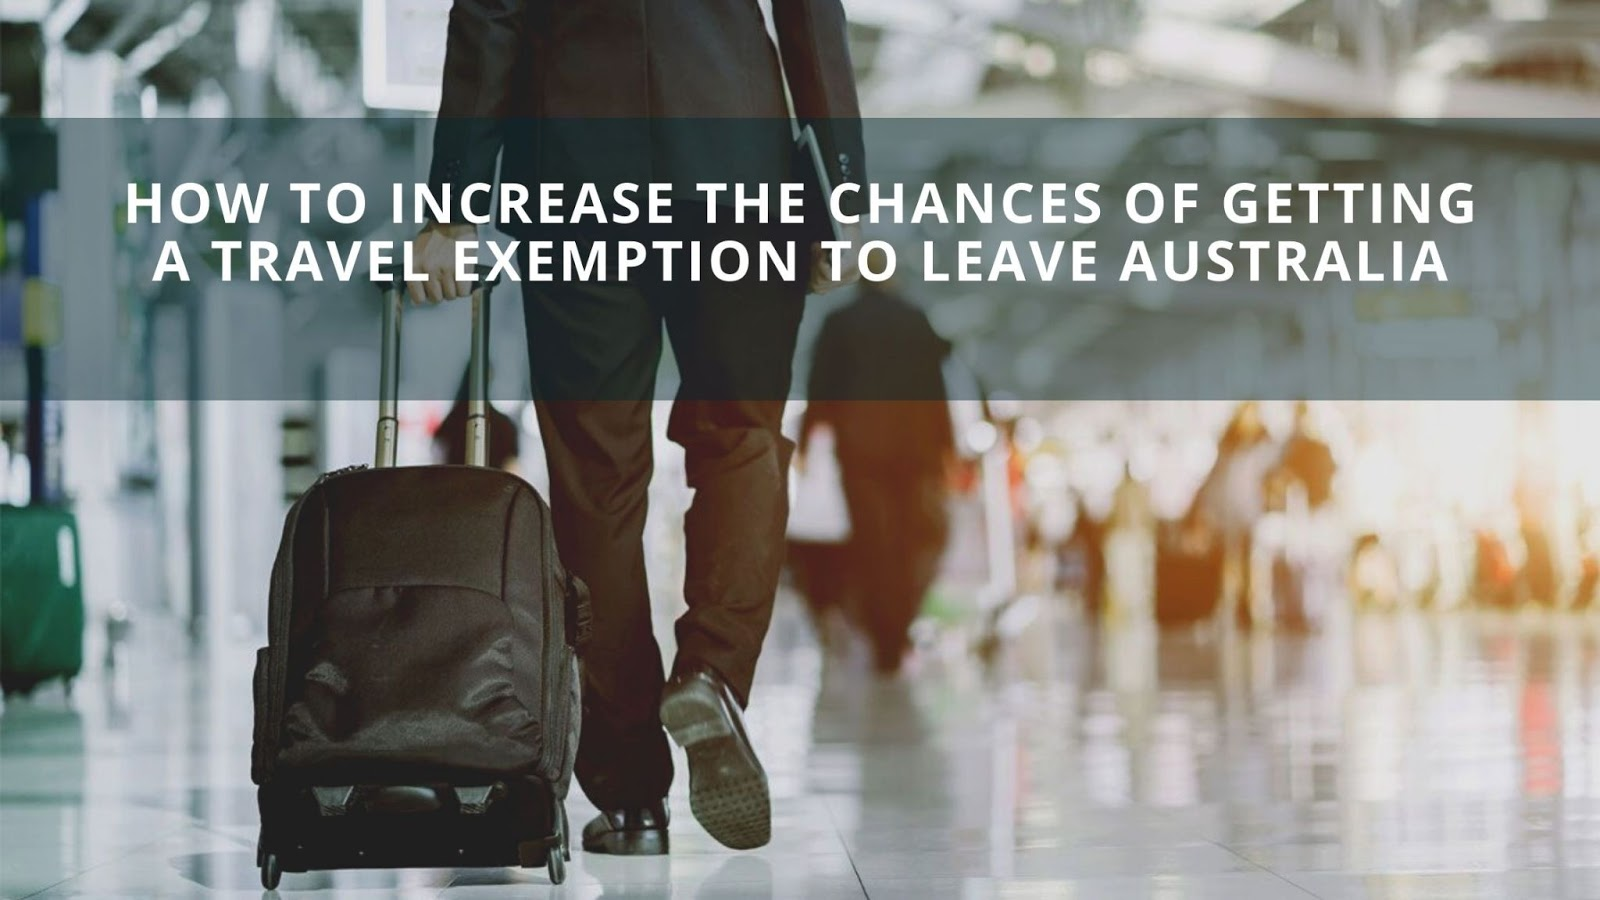 How to Increase the Chances of Getting a Travel Exemption to Leave Australia